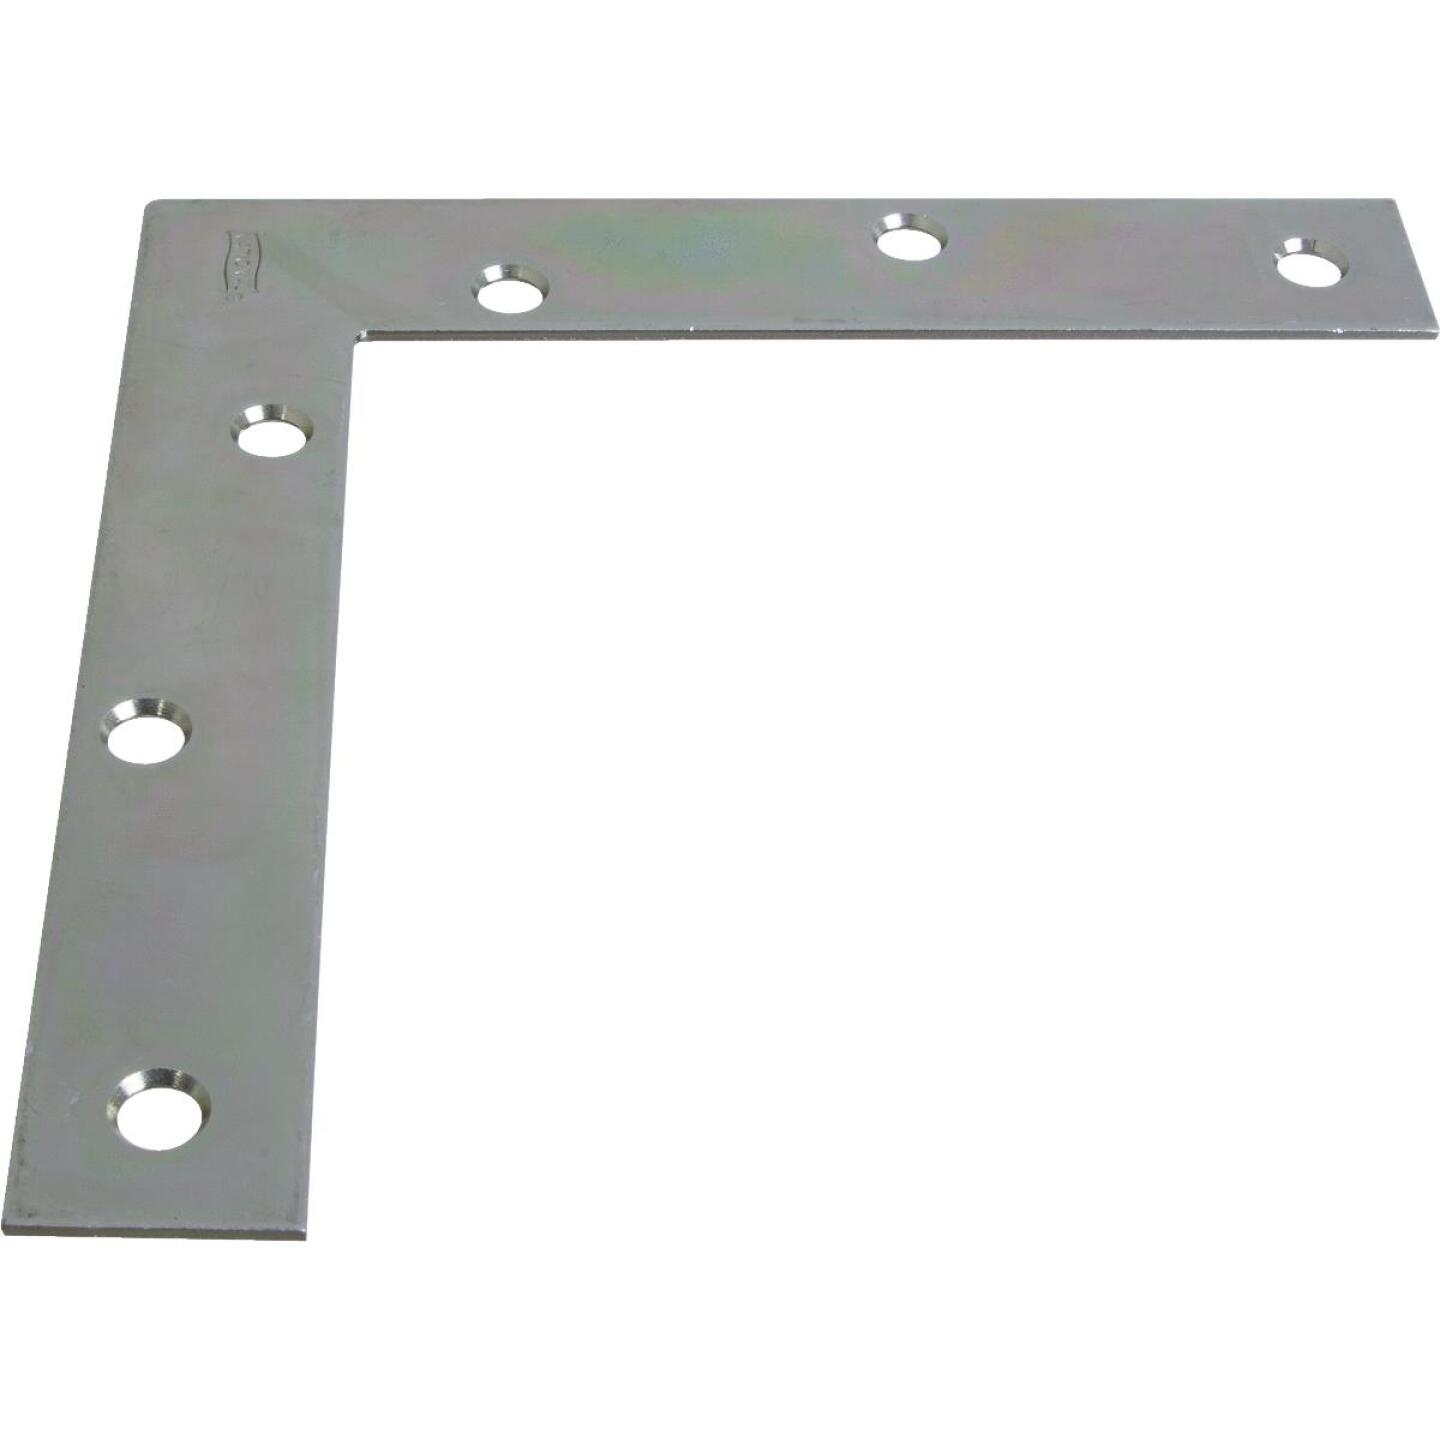 National Catalog 117 6 In. x 1 In. Zinc Flat Corner Iron Image 1